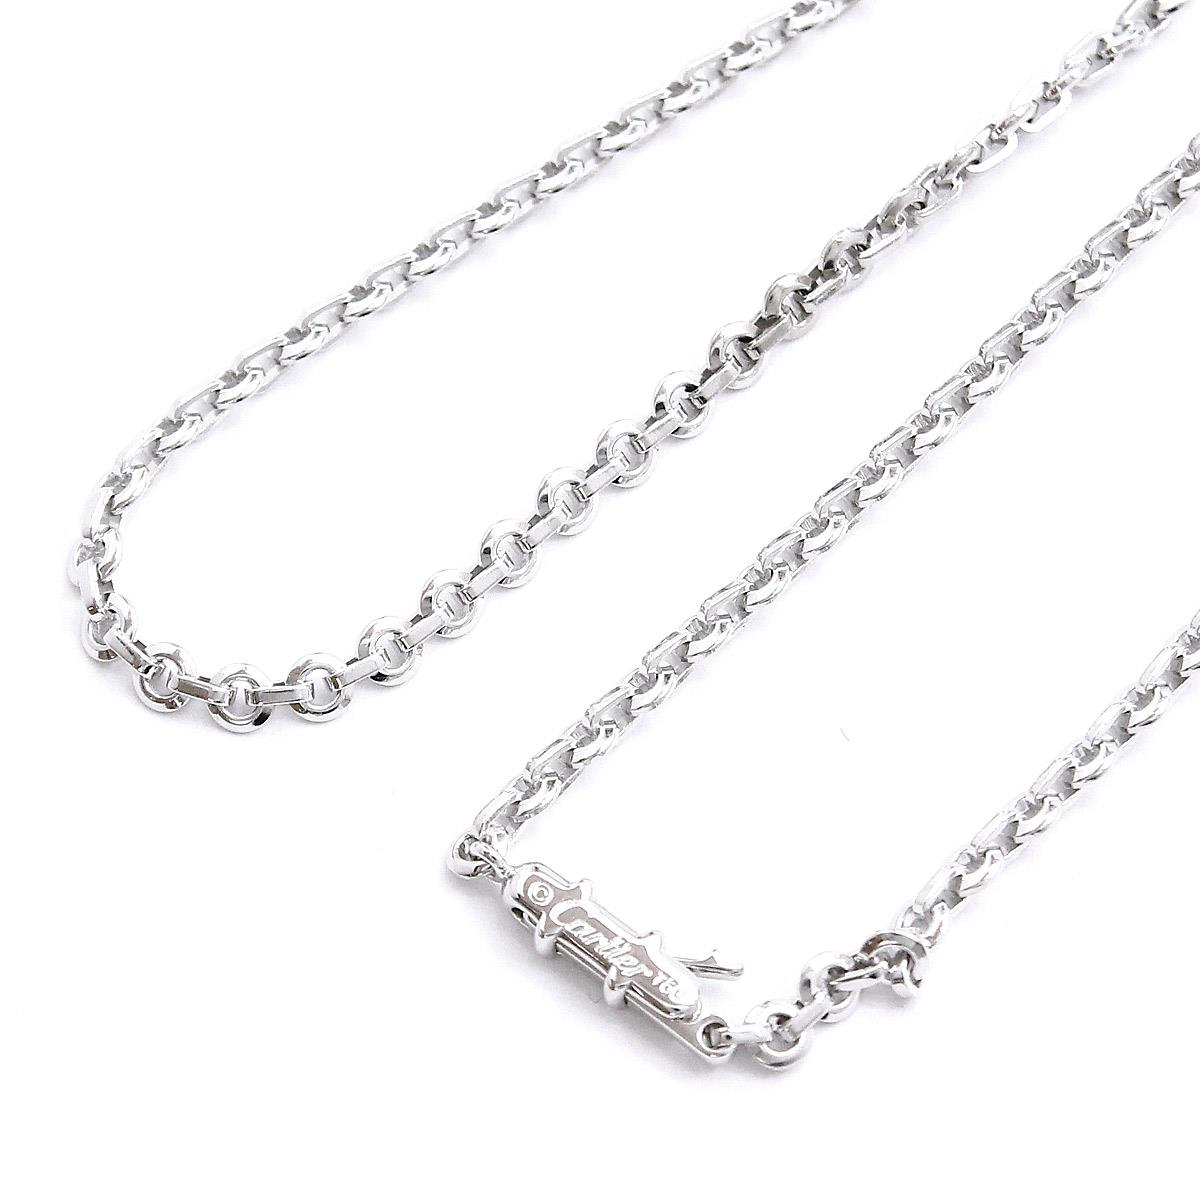 dac0103668e8e4 Details about Auth Cartier Oval Chain Necklace 18K K18 WG White Gold 750  90060009